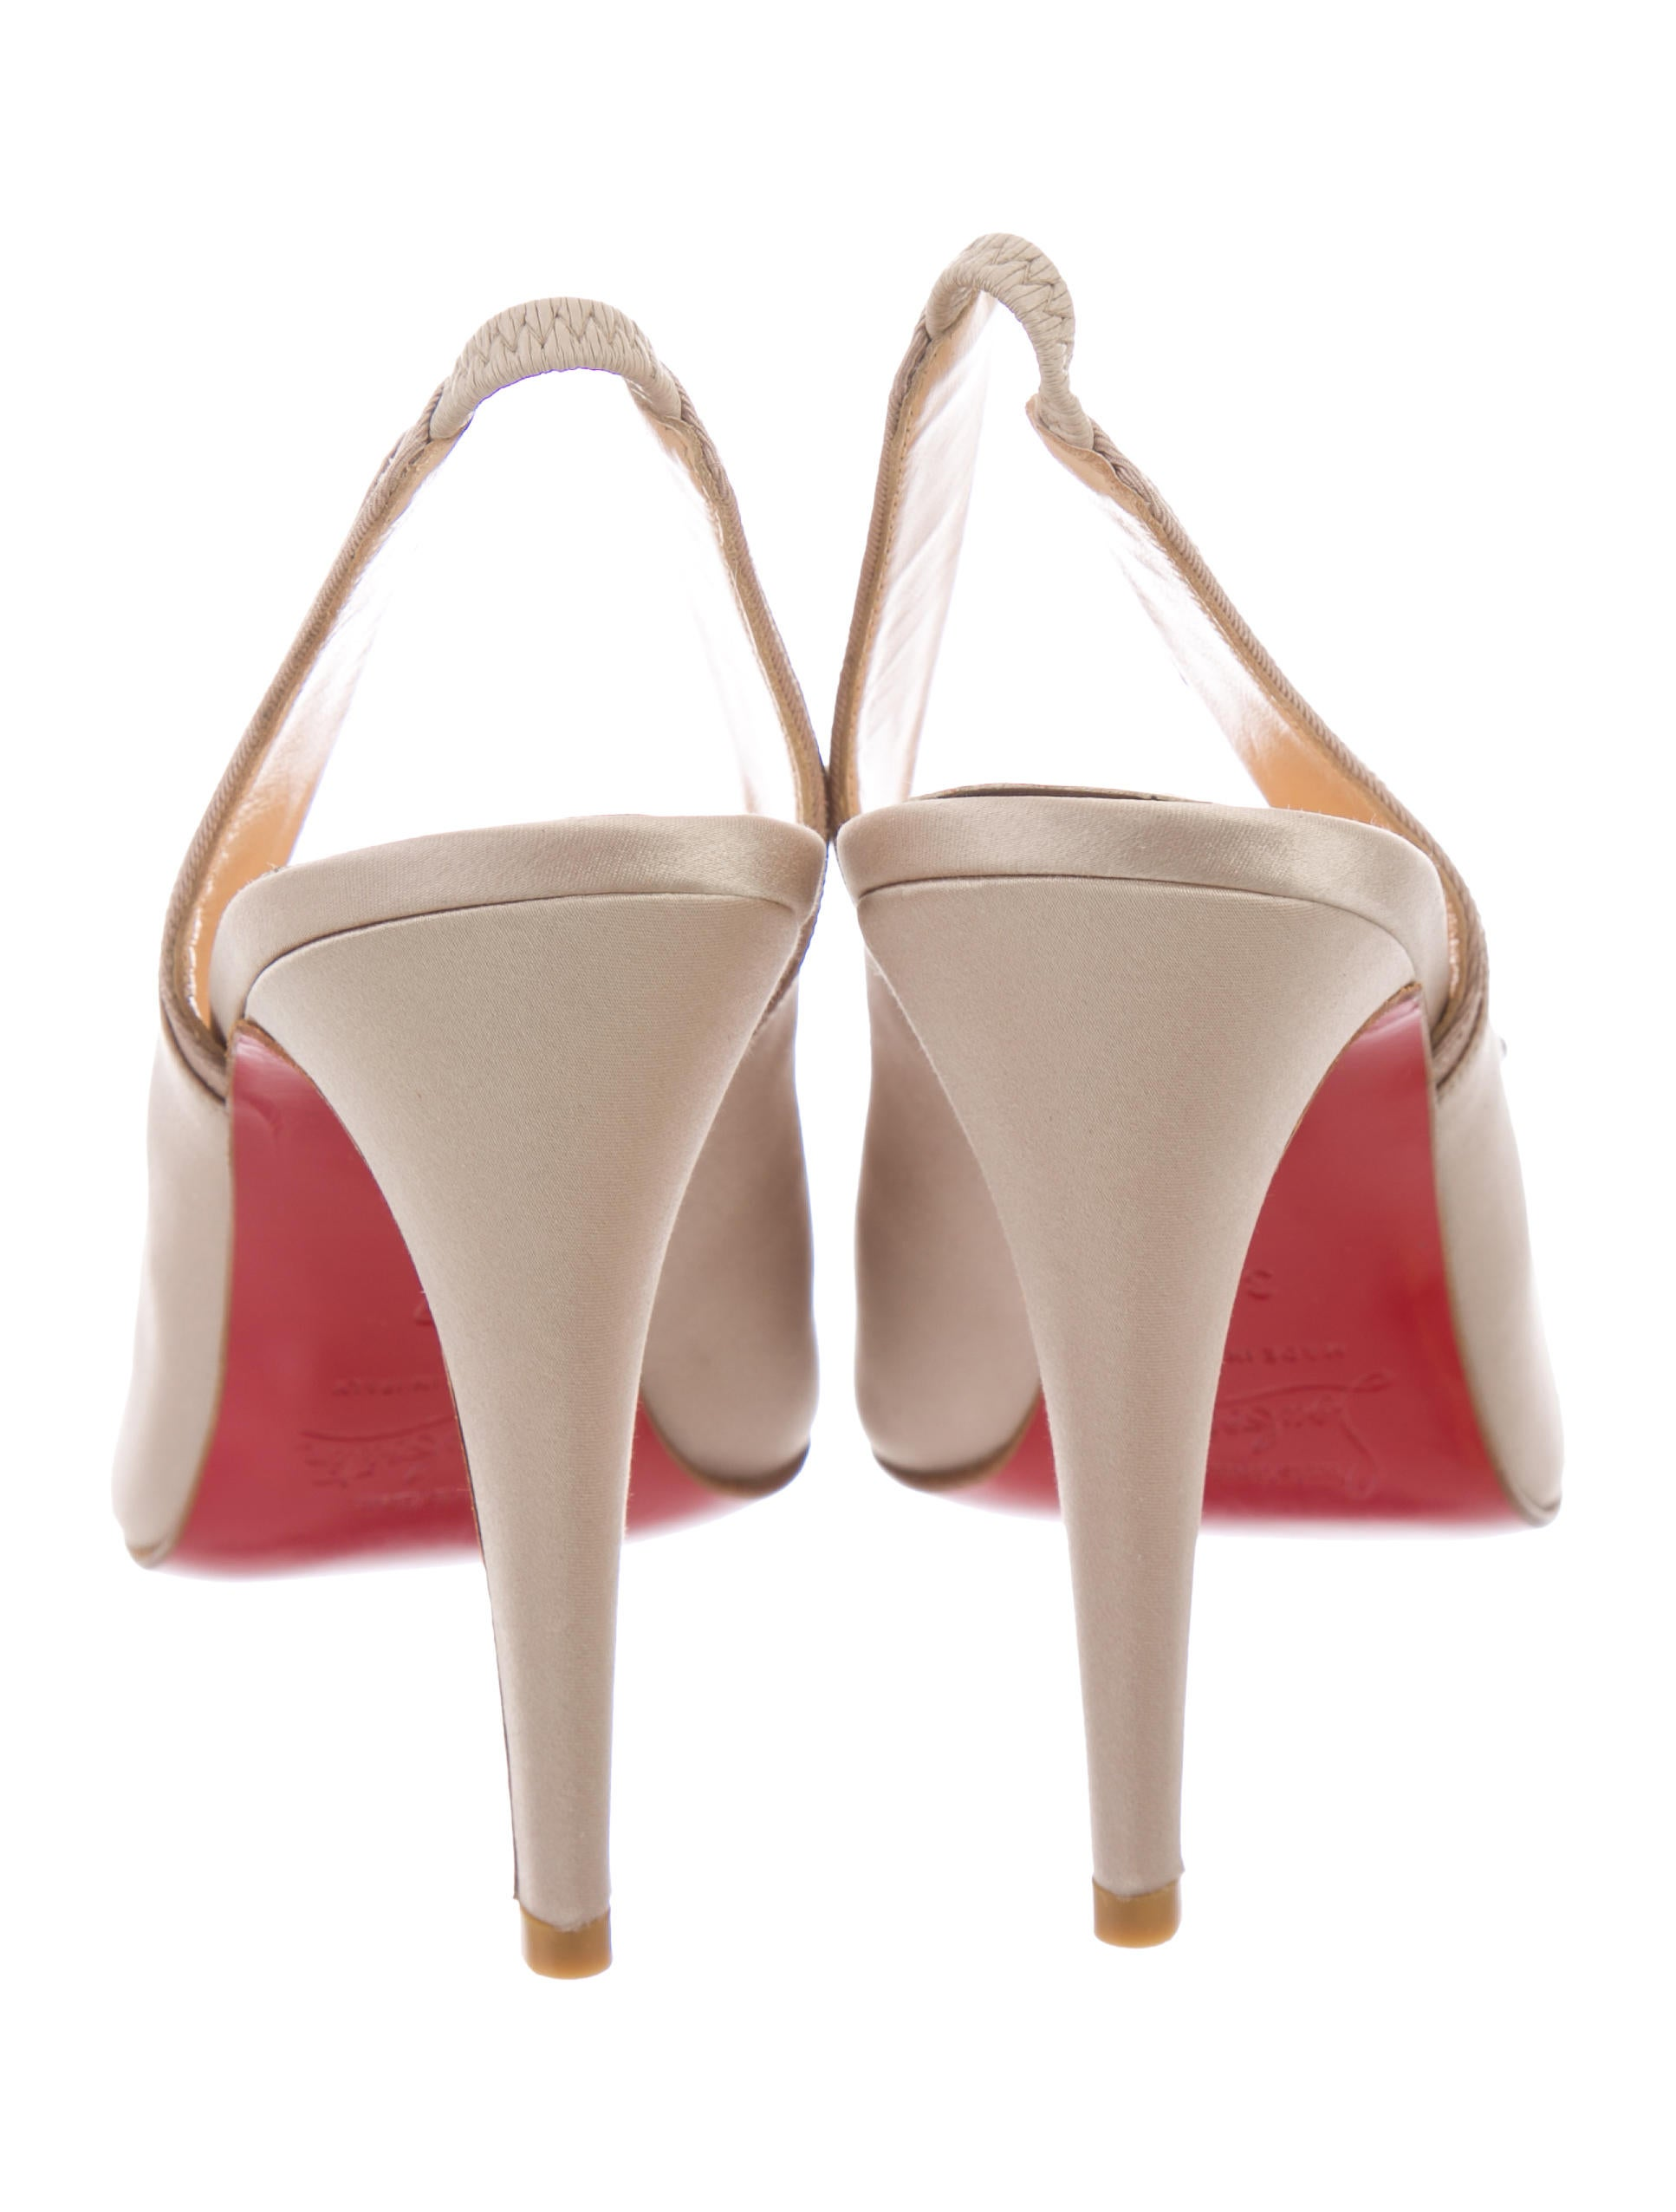 buy cheap best wholesale Christian Louboutin Nooka 100 Pumps w/ Tags discount view ebay sale online cheap shop mpuaEFC